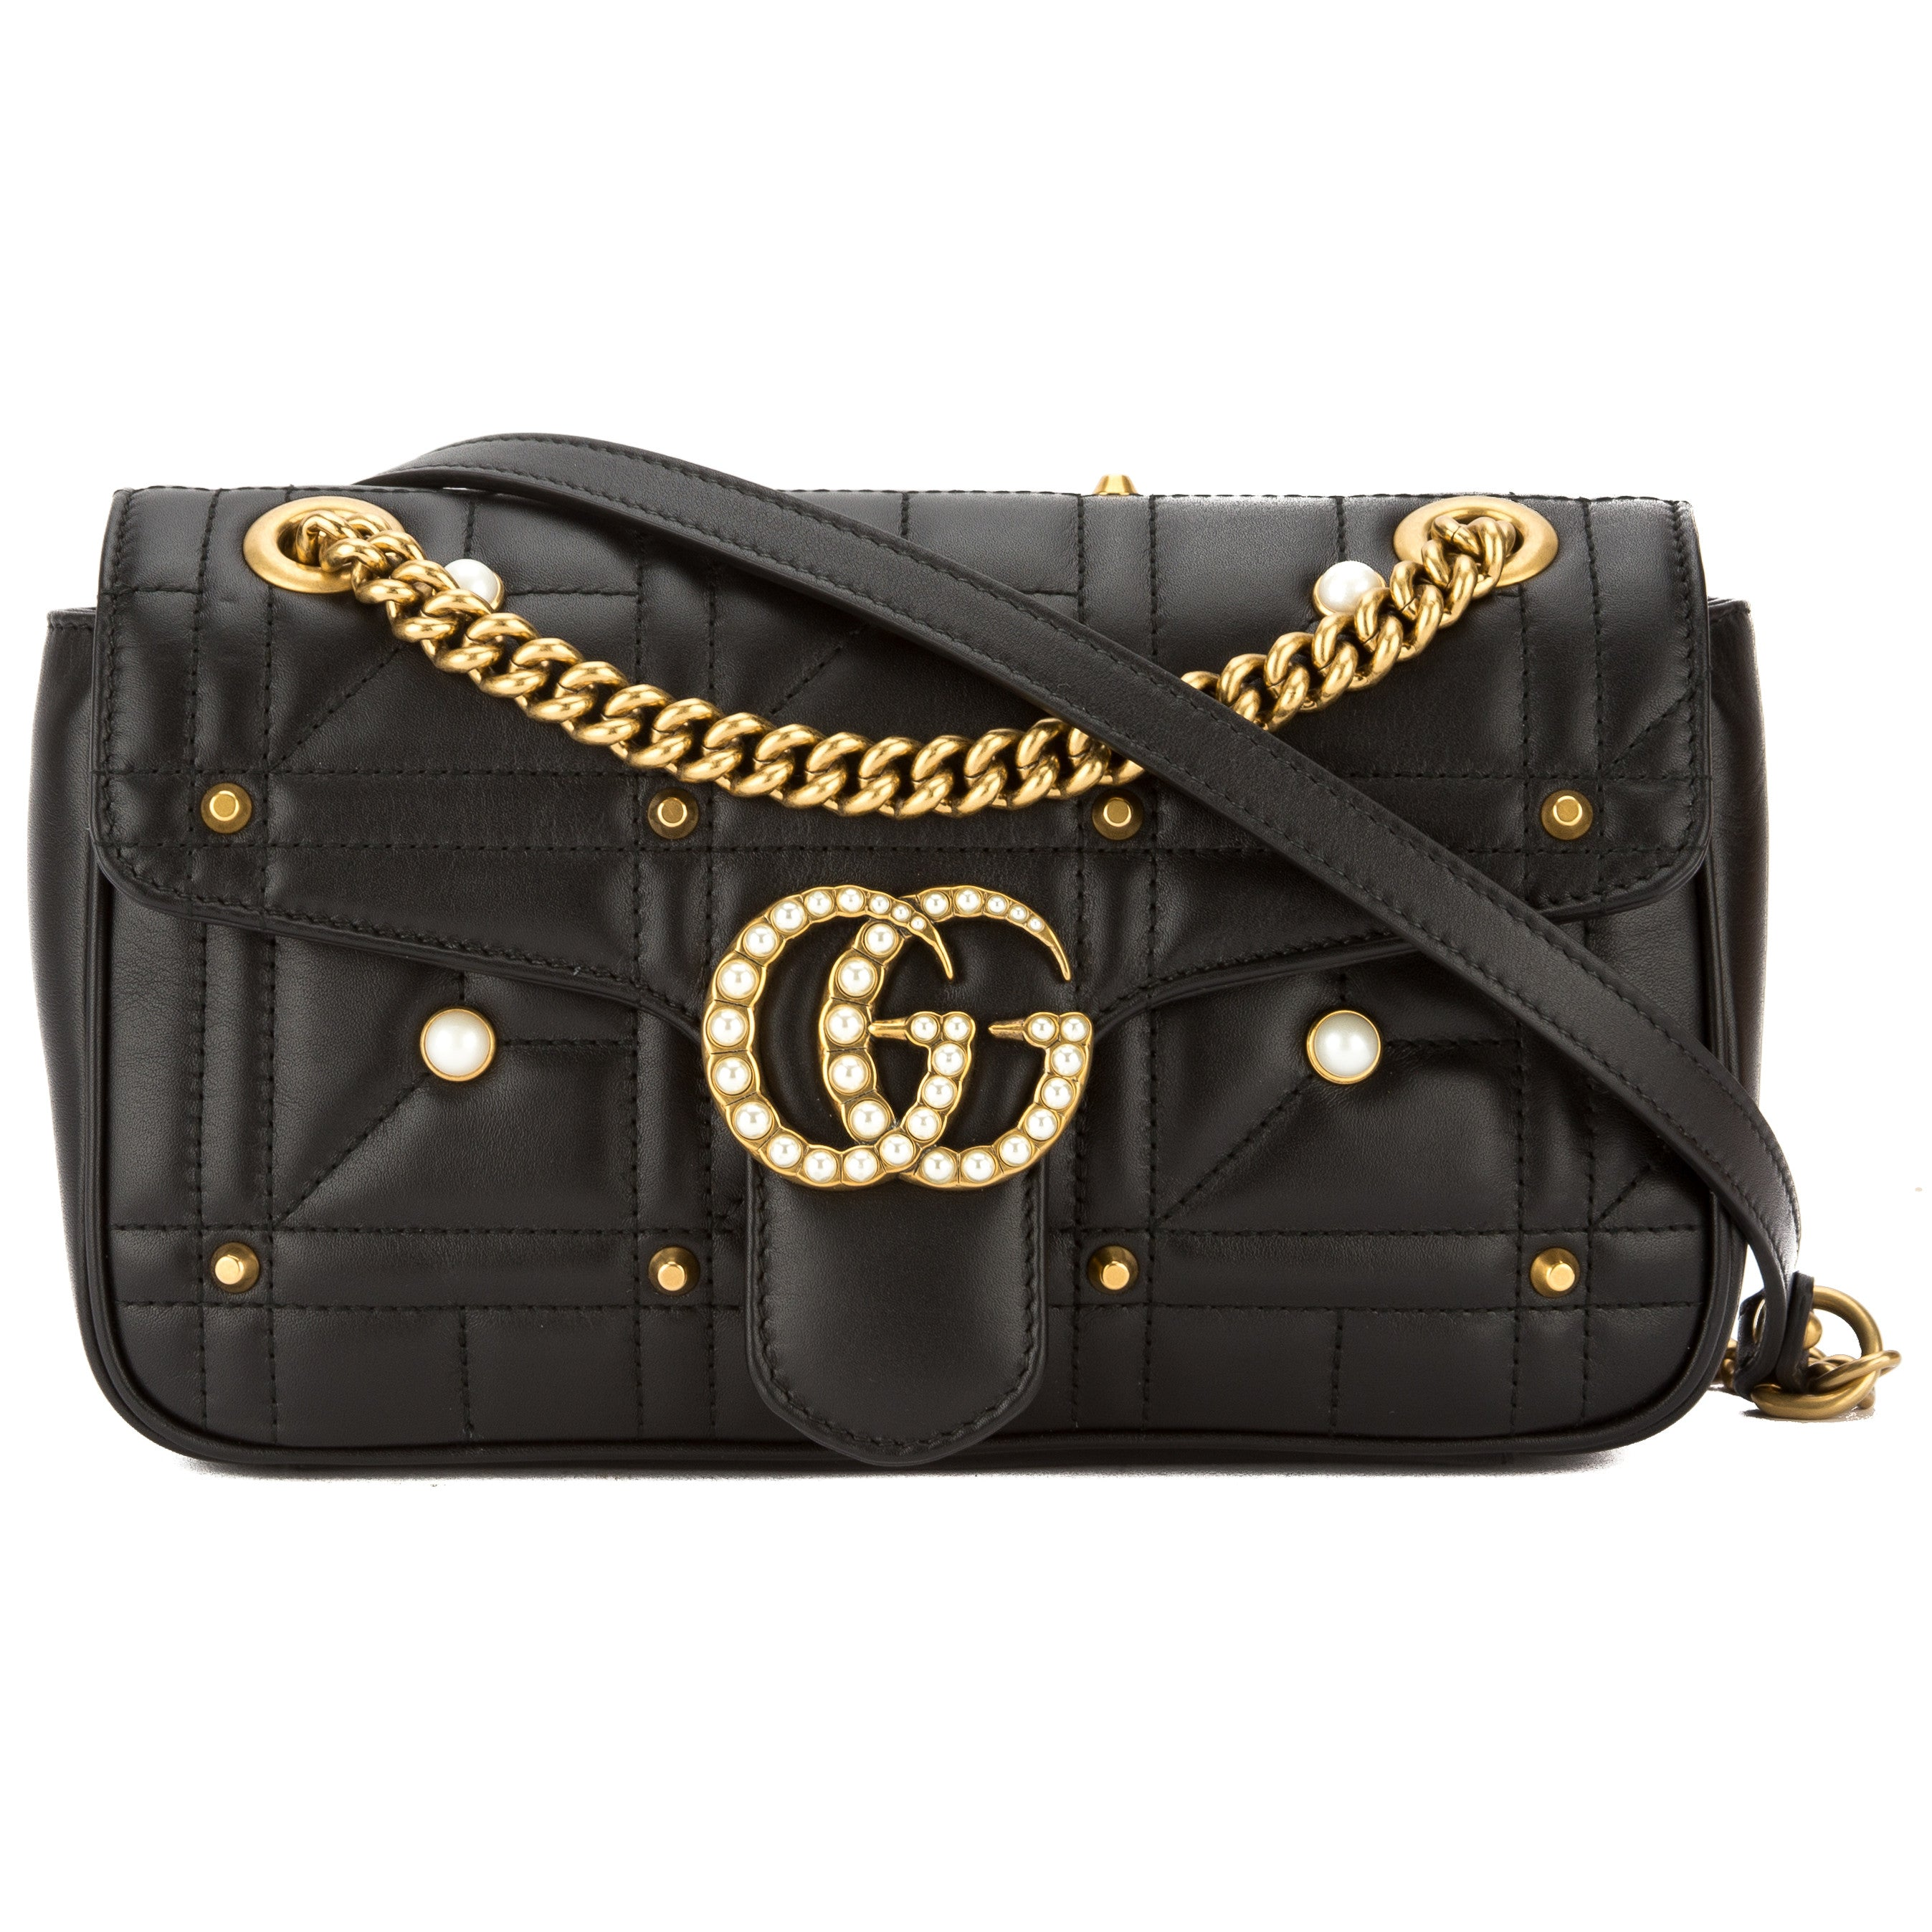 3d4a34a82171 Gucci Black Leather GG Marmont Matelasse Shoulder Bag (New with Tags ...